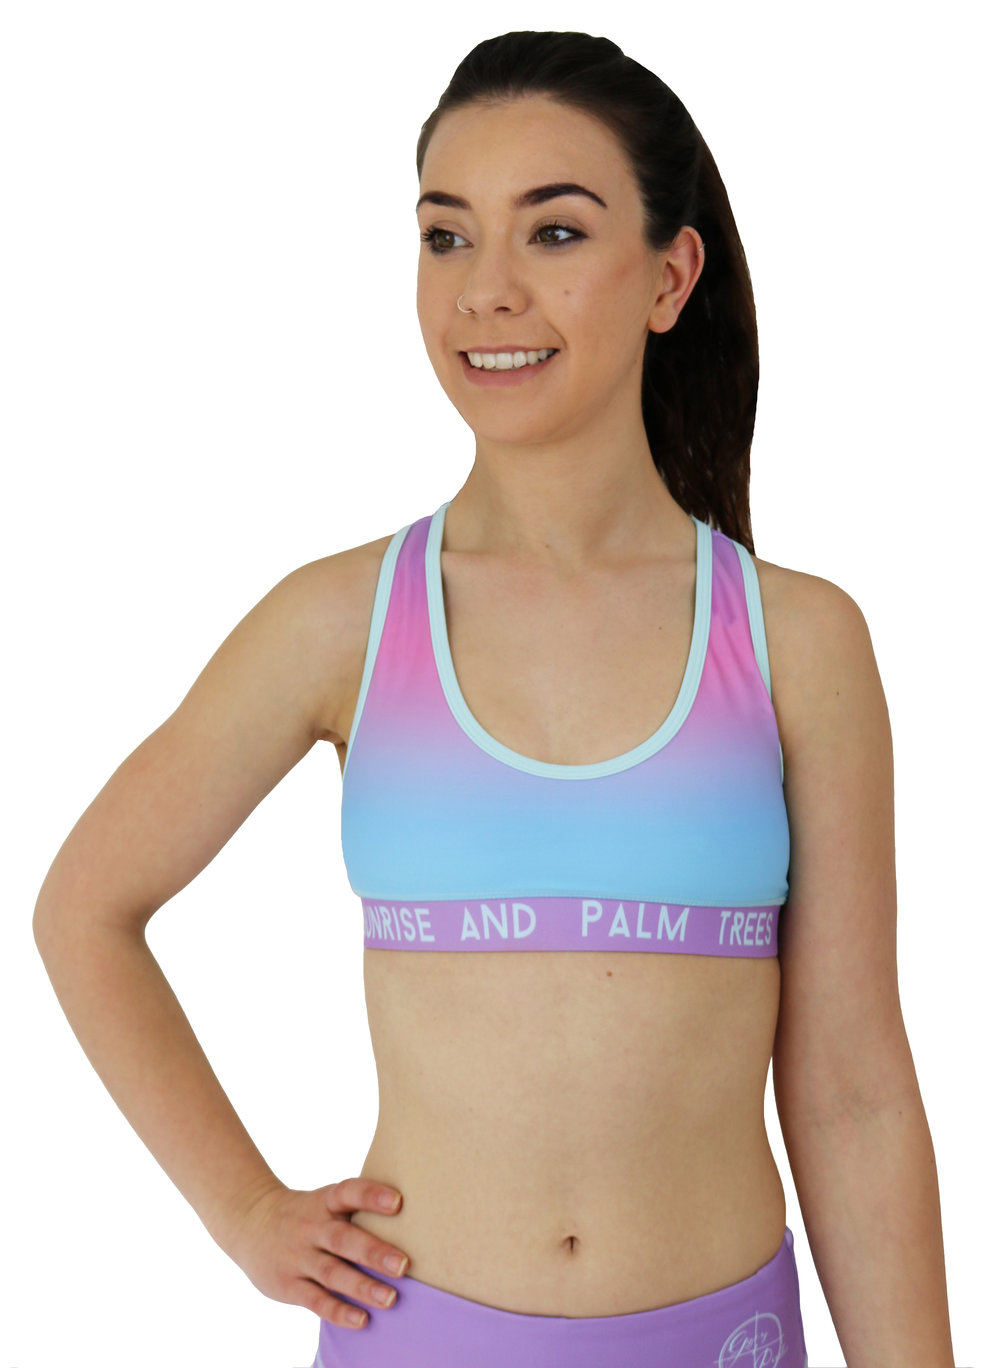 GP SUNRISE AND PALM TREES SPORTS BRA FRONT.jpg